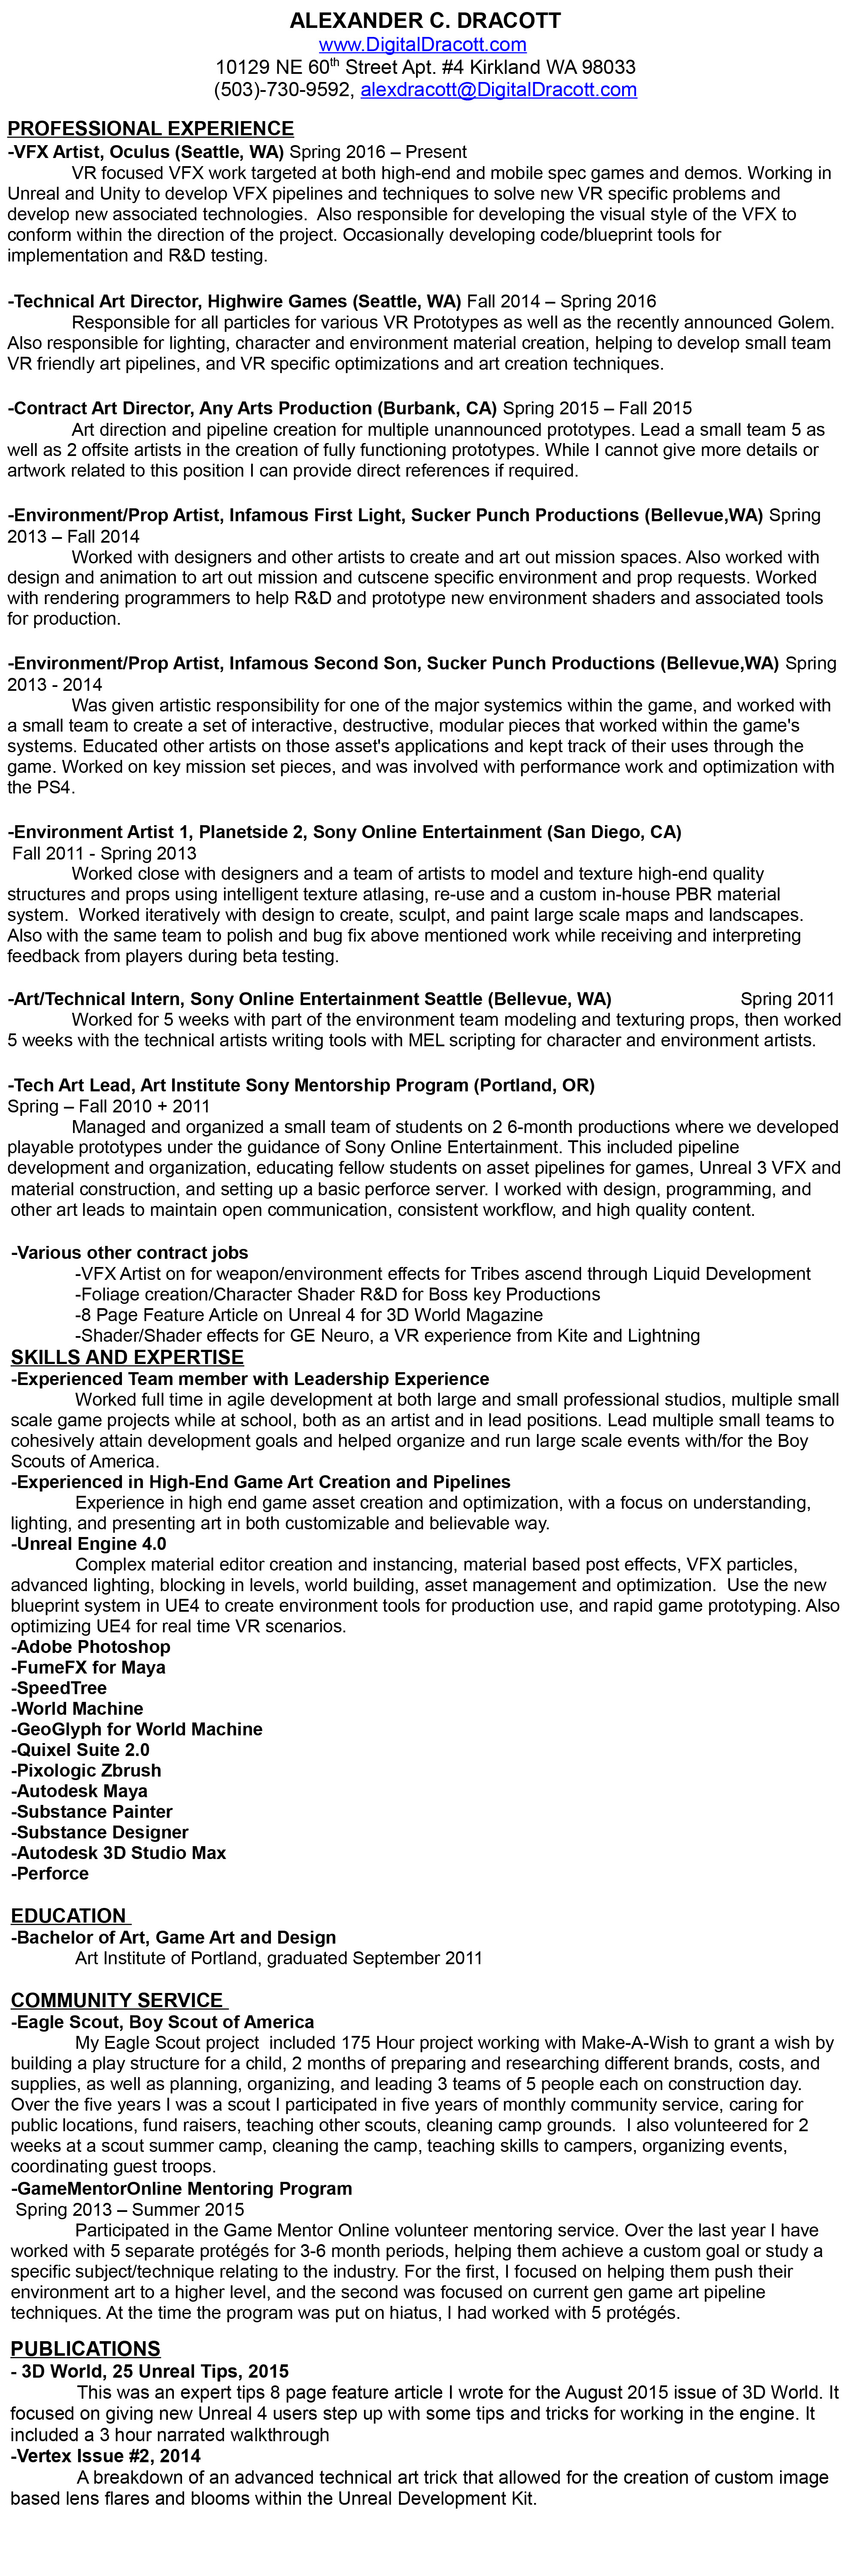 Delighted 10 Tips For Making A Resume Thick 1099 Contract Template Solid 1099 Pay Stub Template 2 Fold Brochure Template Old 2 Page Resume Format Example Green2 Page Resumes Samples Vfx Artist Fresher Resume   Vosvete